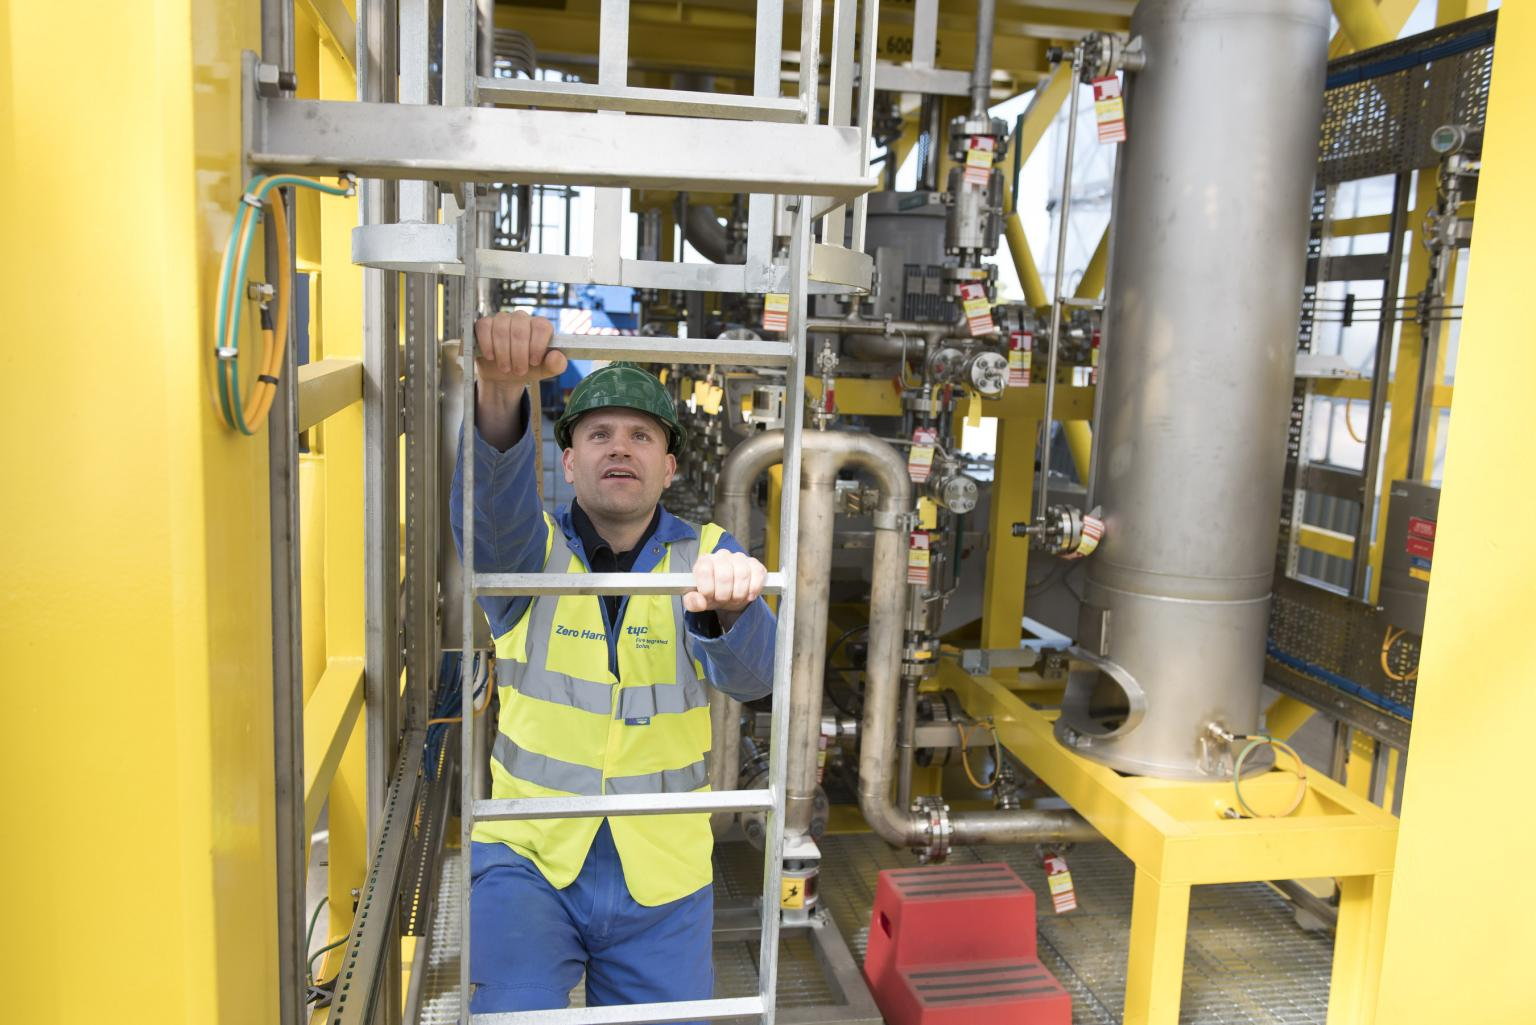 Tyco QHSE practices helped project achieve two million man-hours without a time loss incidence